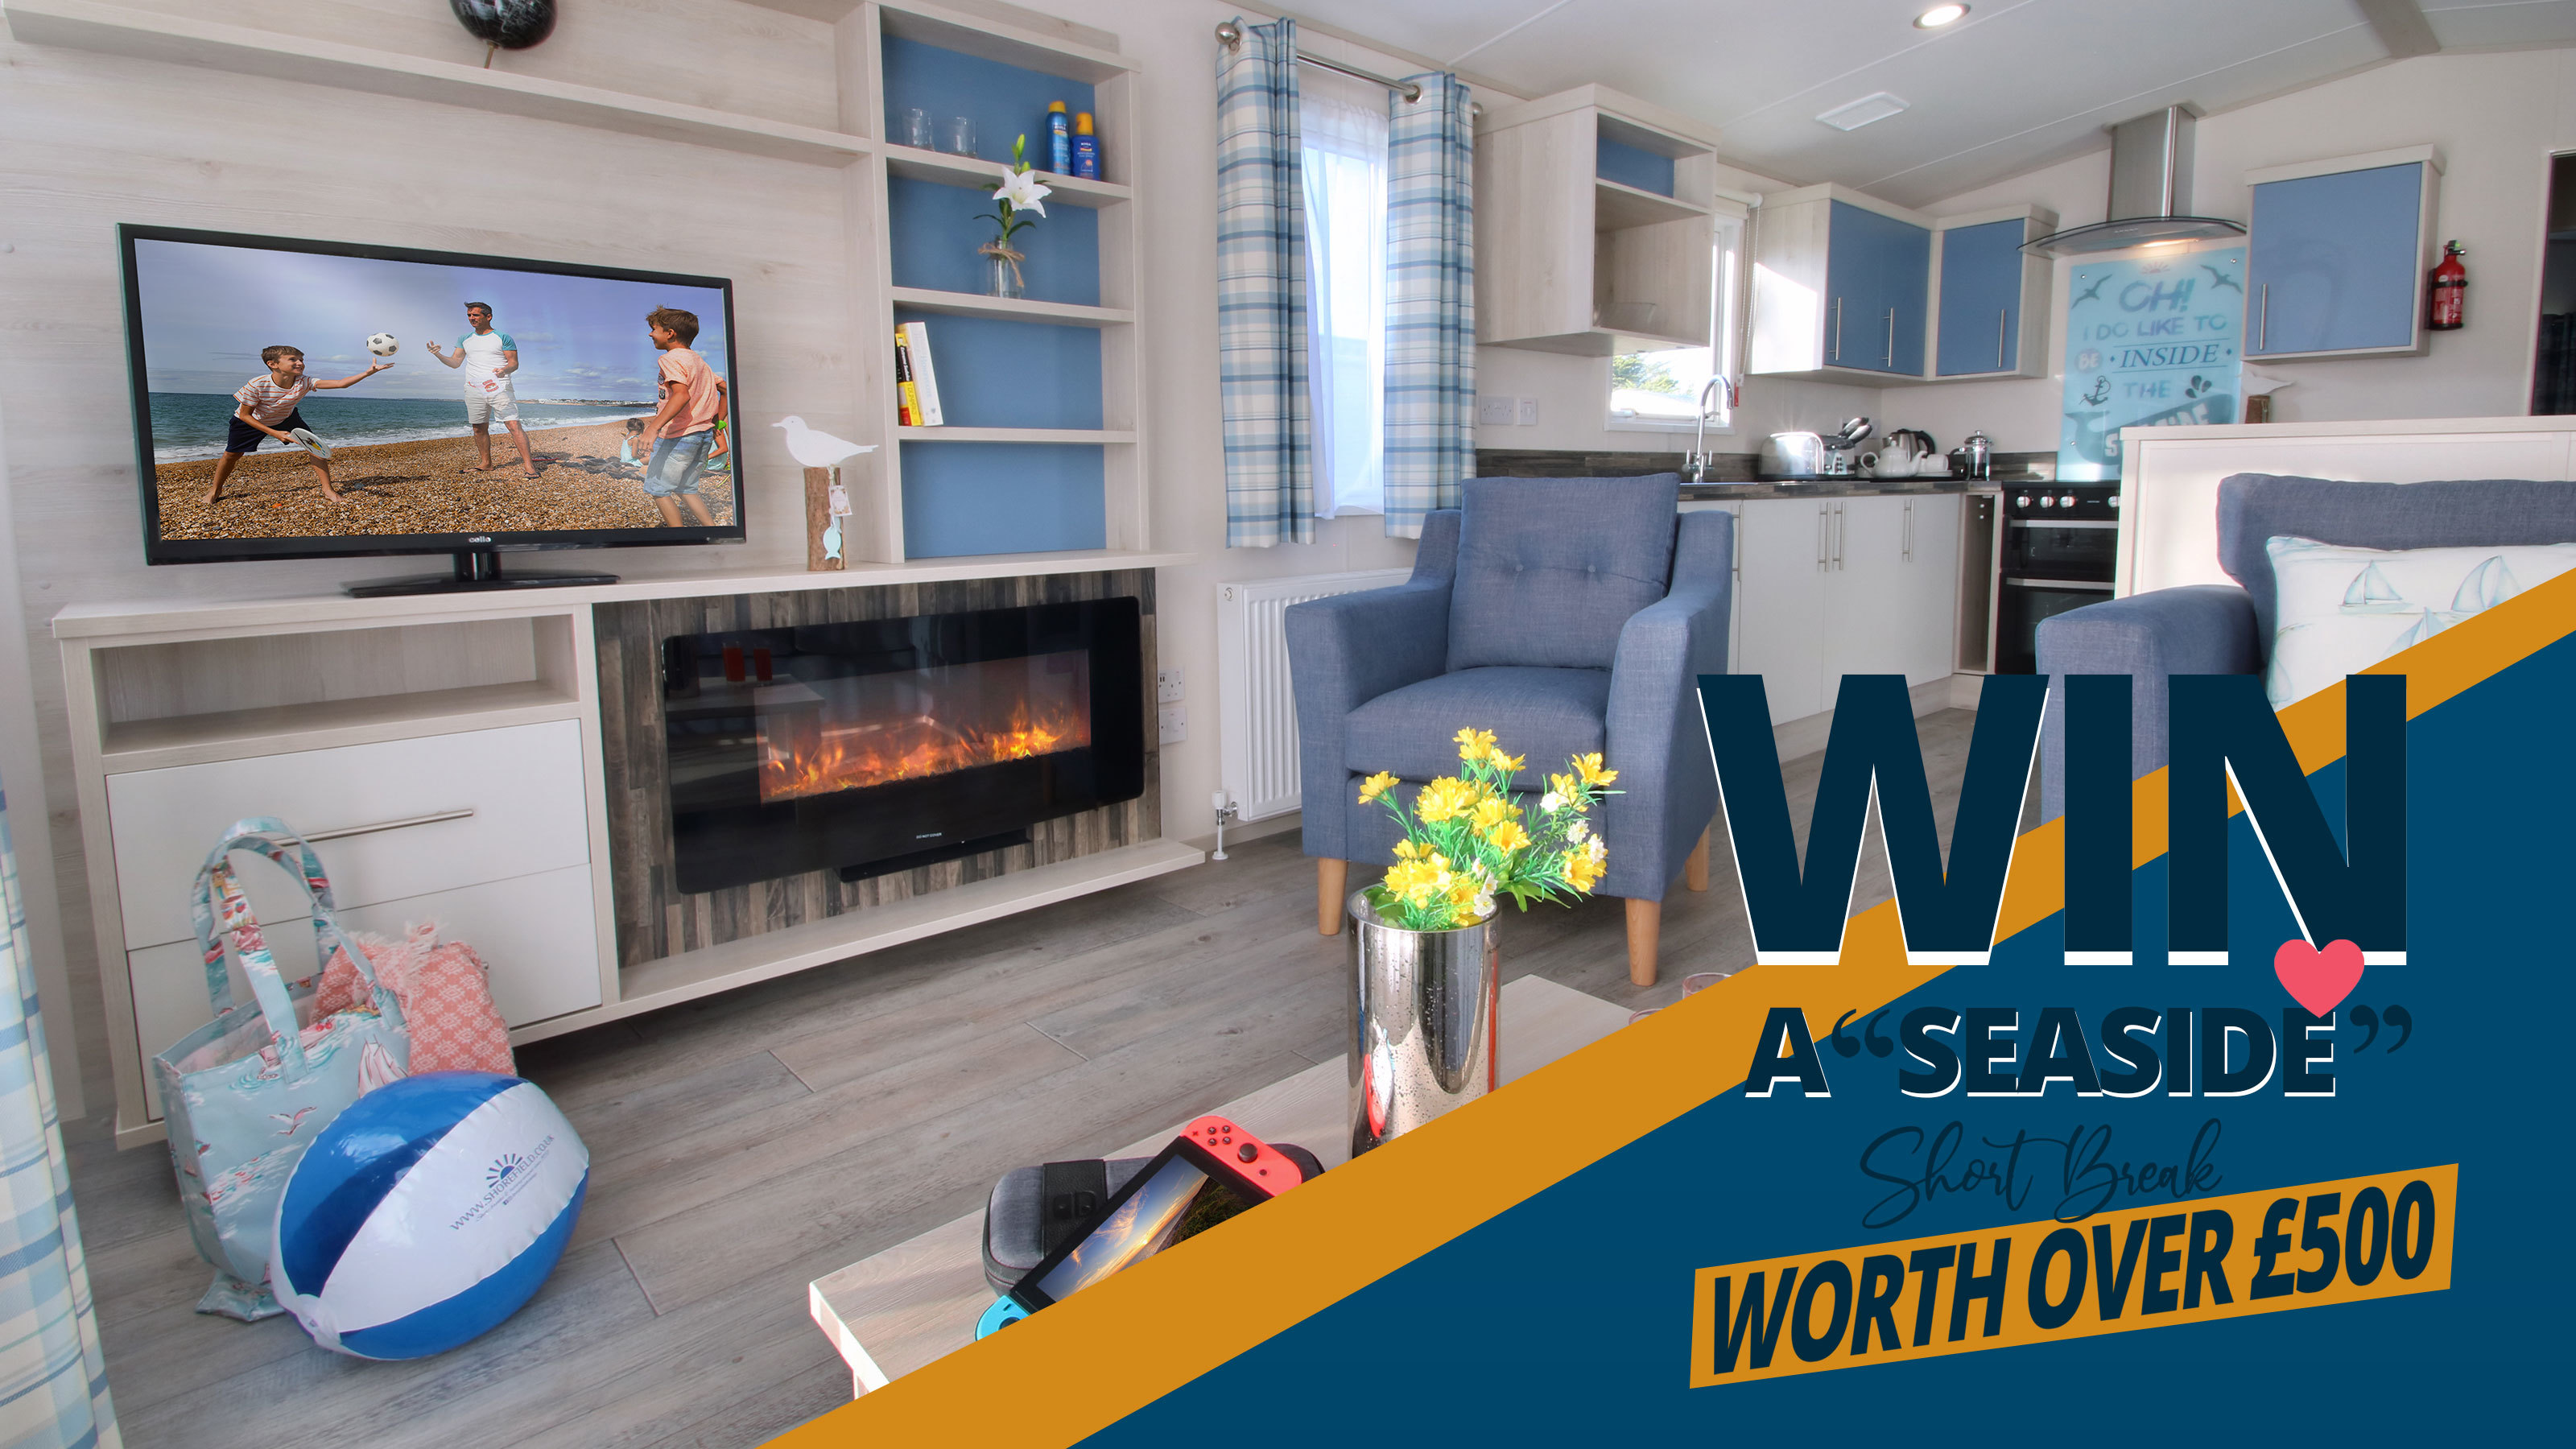 Shorefield-Holidays-Competition-win-a-short-break